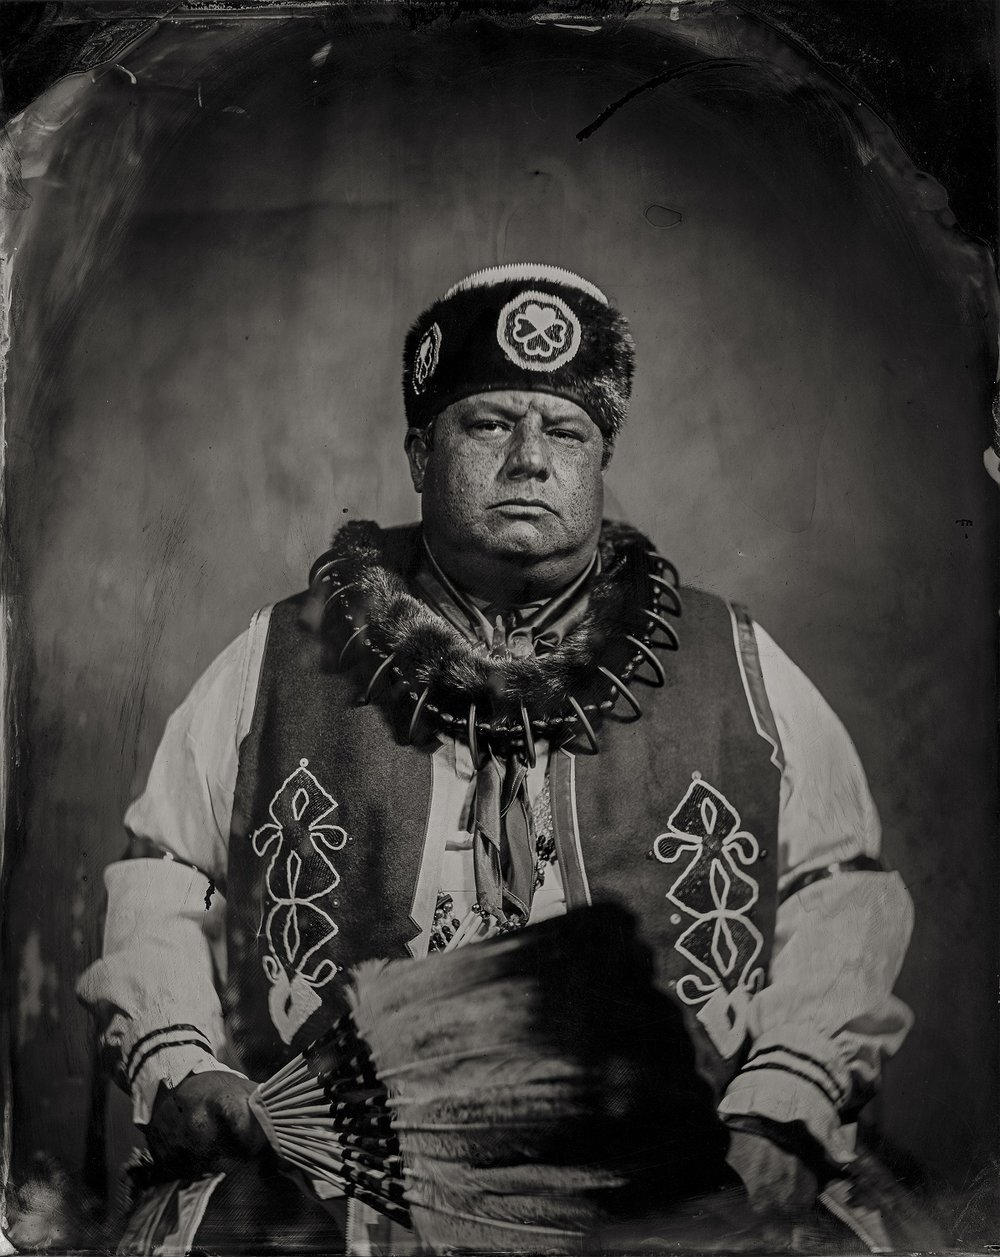 Chairman John Shotton, citizen of Otoe-Missouria Tribe and affiliated Iowa, 2016